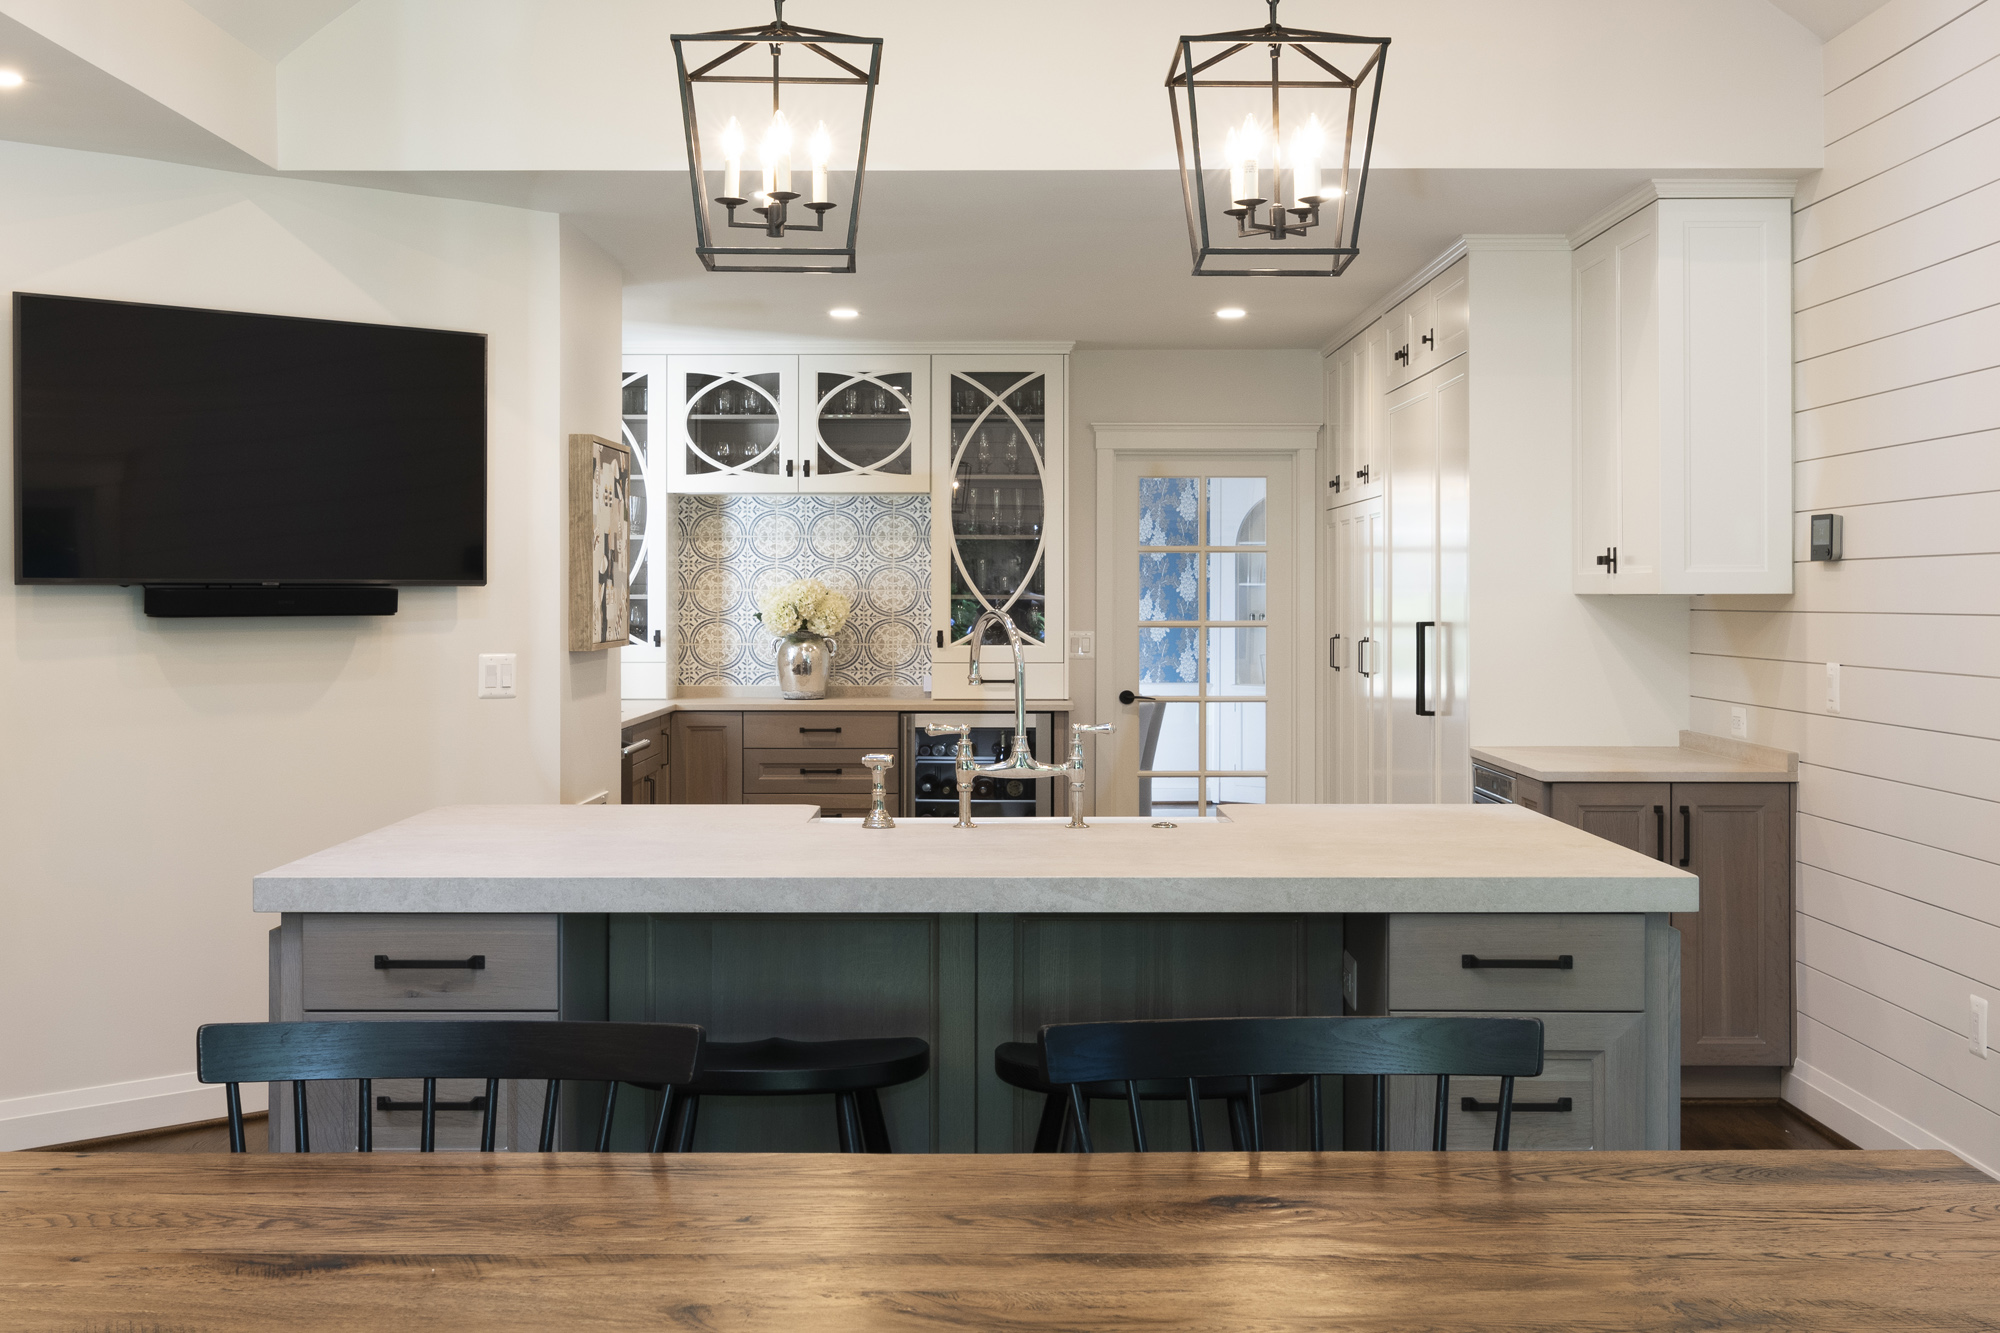 Before And After Renovation Of Transitional Kitchen In Washington Dc